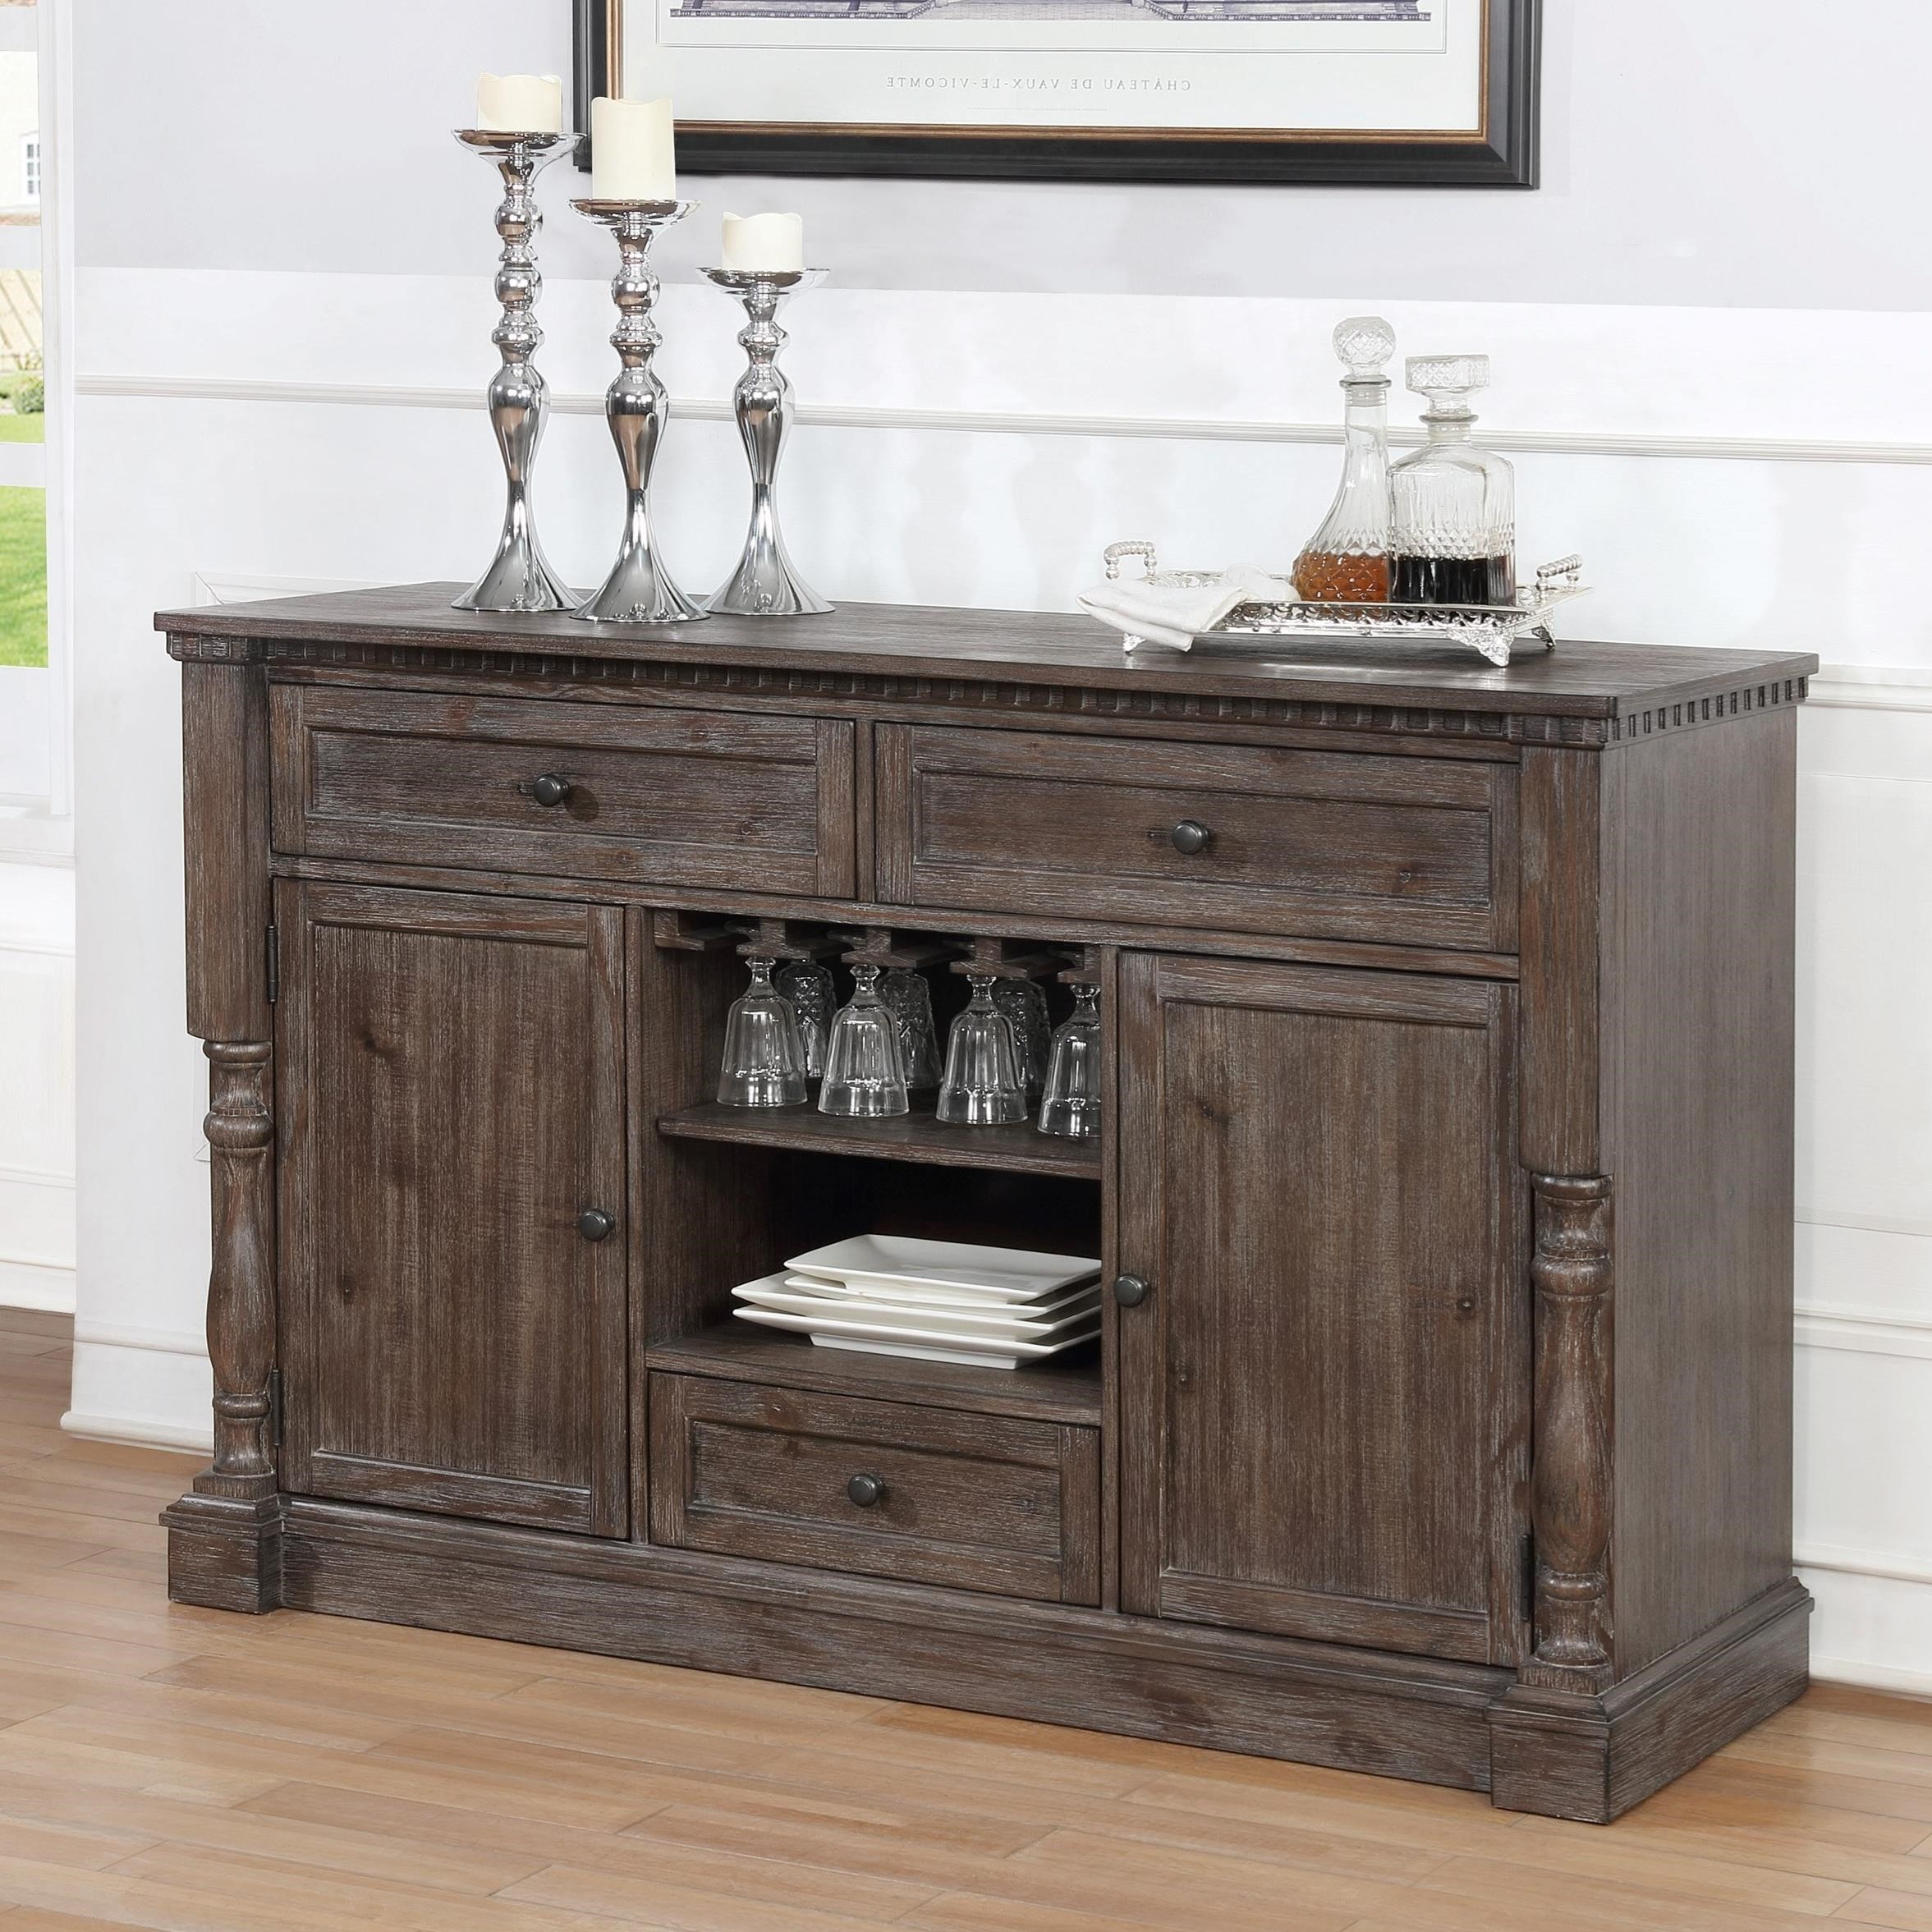 Regent Transitional Dining Room Server With Wine Glass Storage By Crown Mark